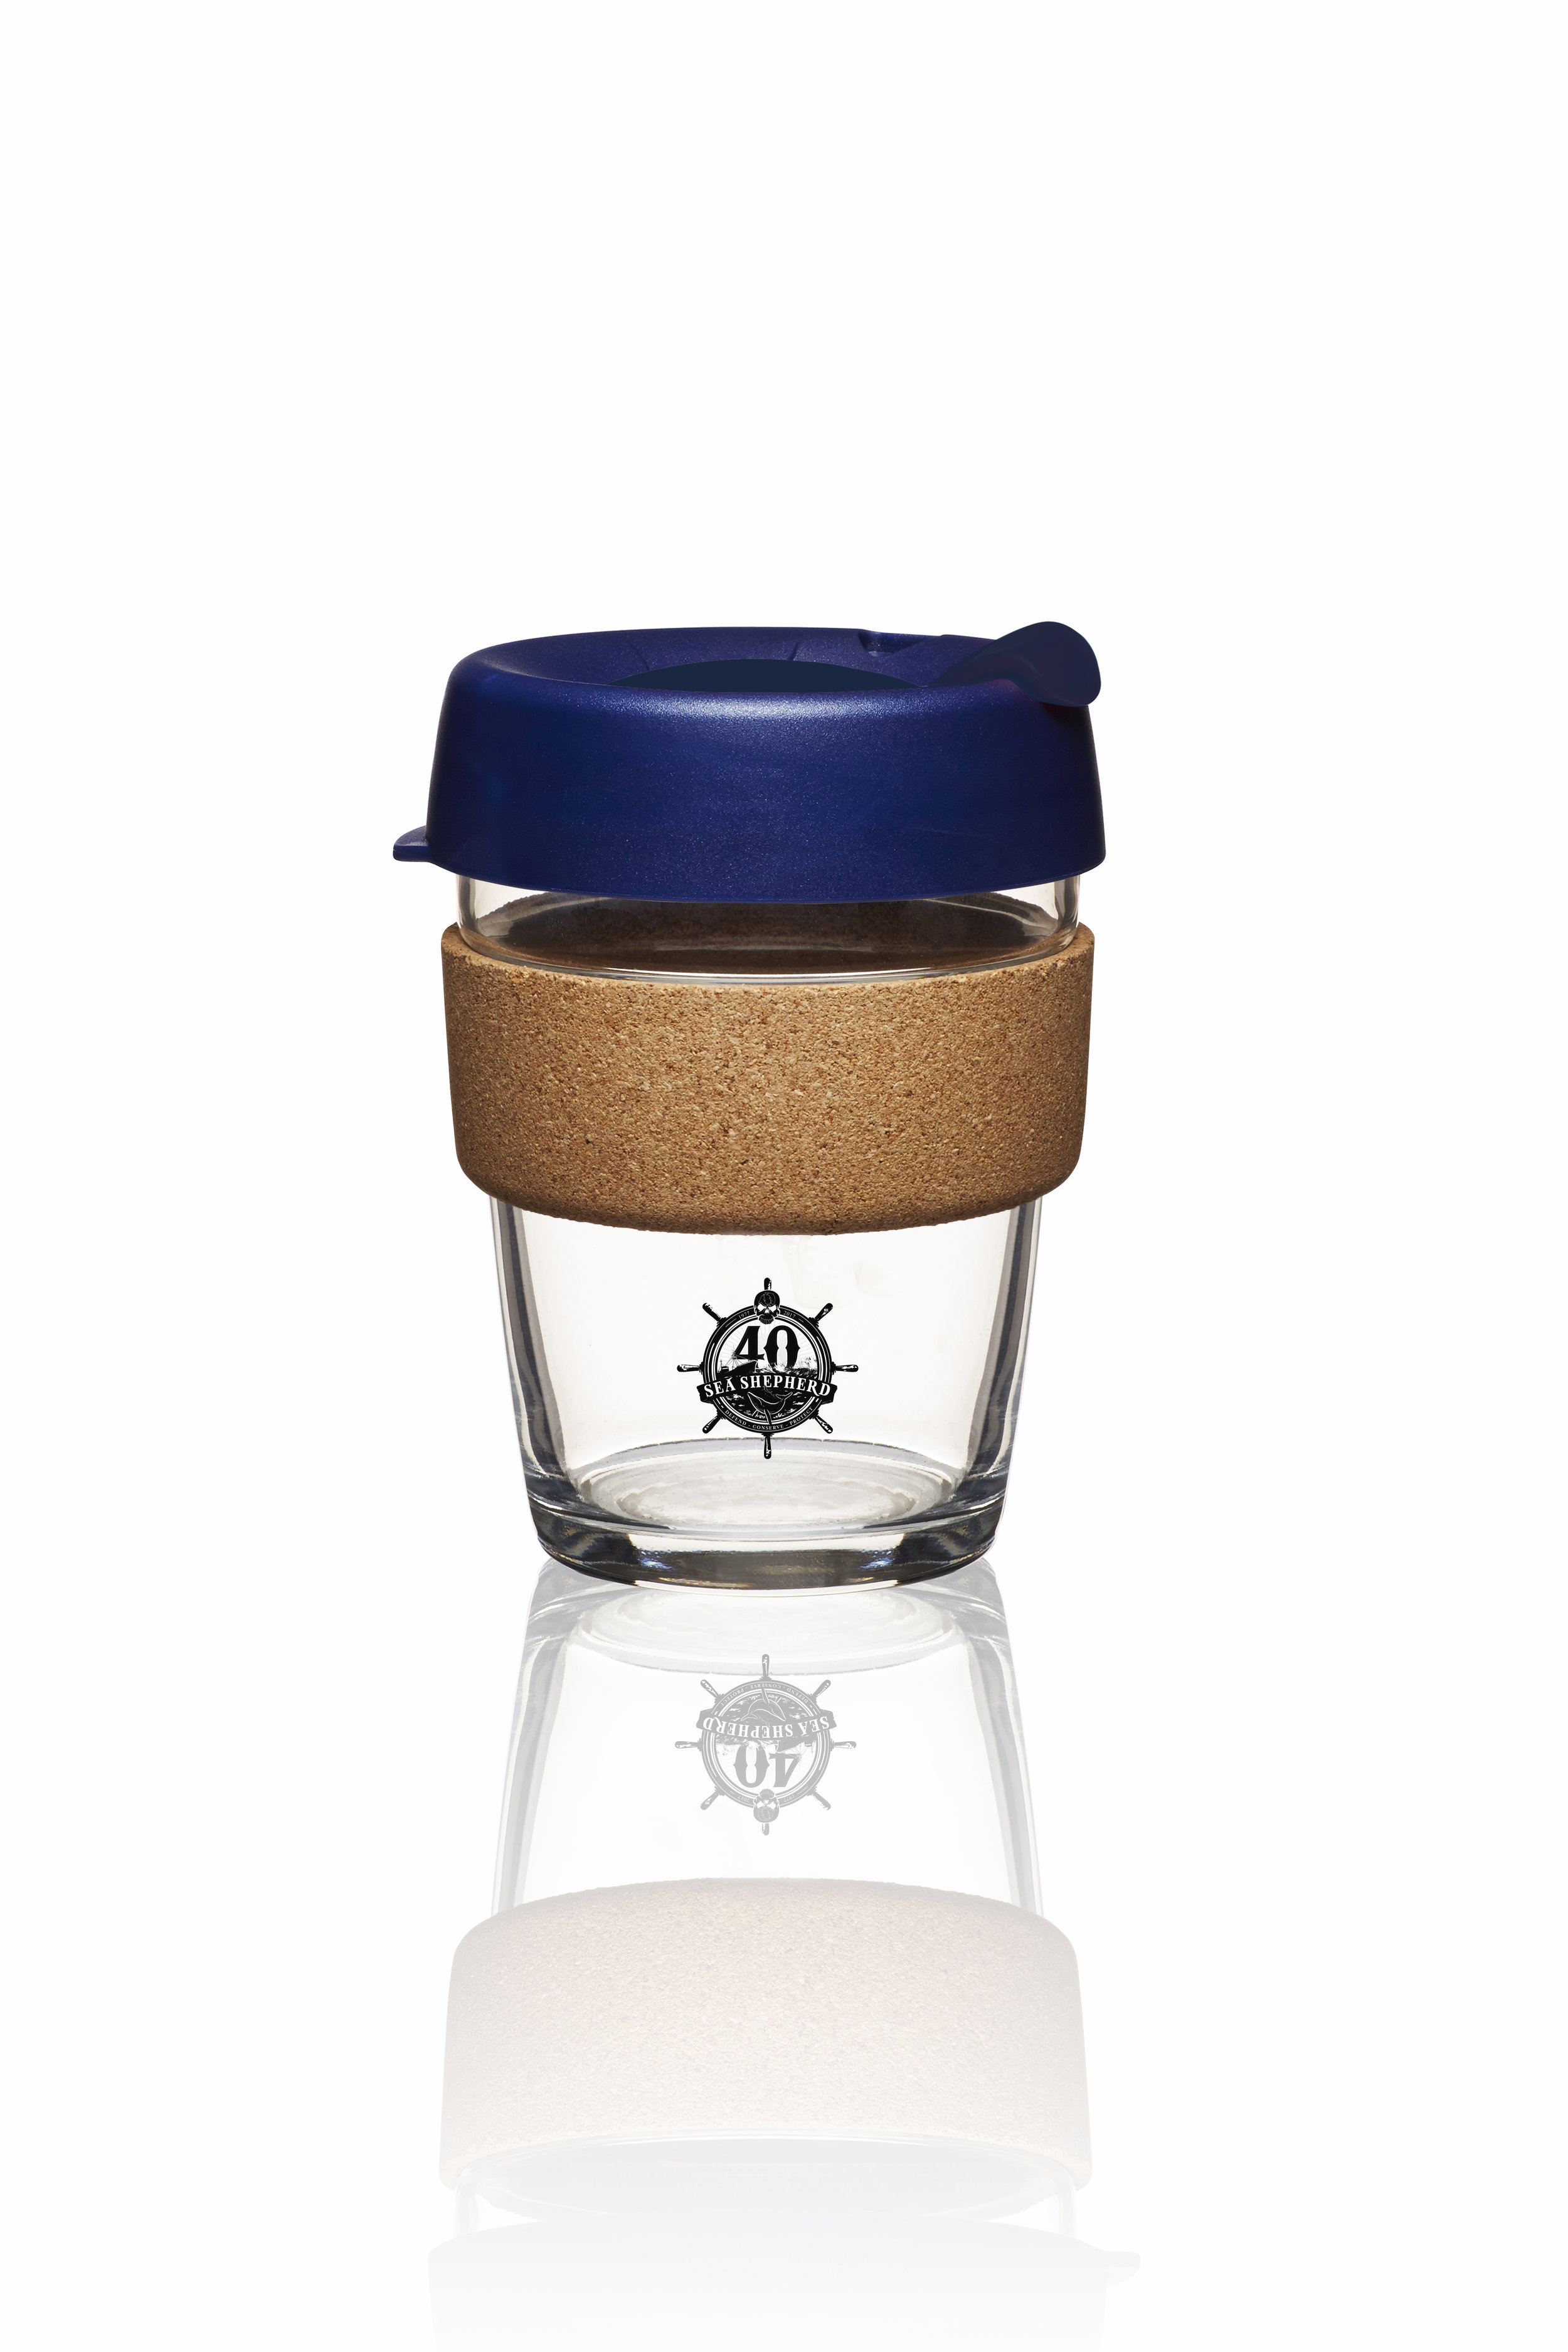 12oz Brew Cork LE-Filter-Filter_SeaShepard.jpg